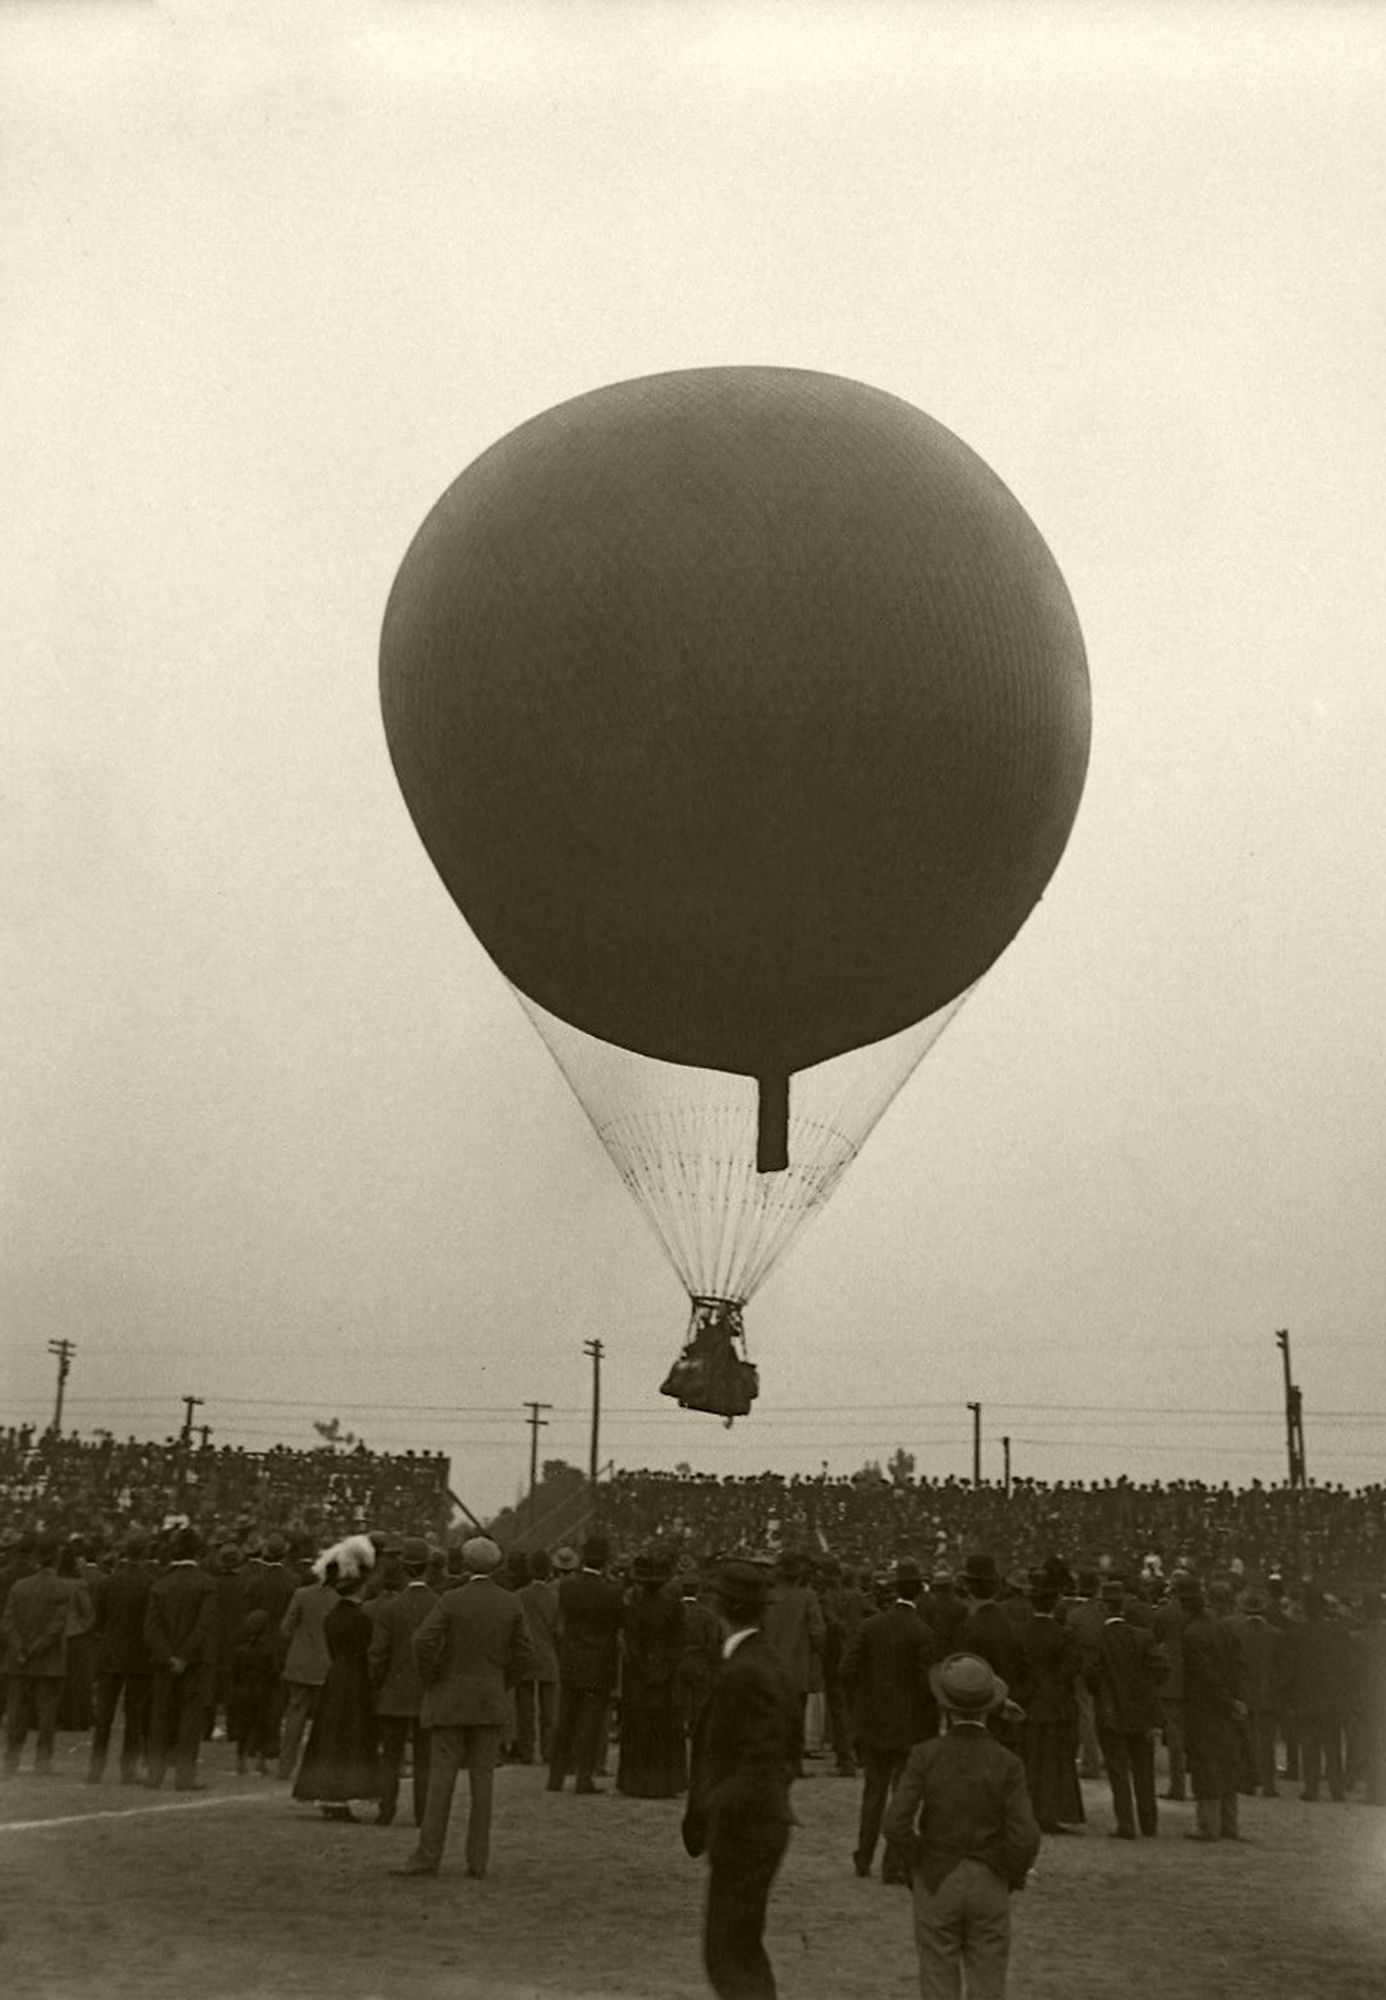 A hot air balloon in flight at the 1910 Los Angeles